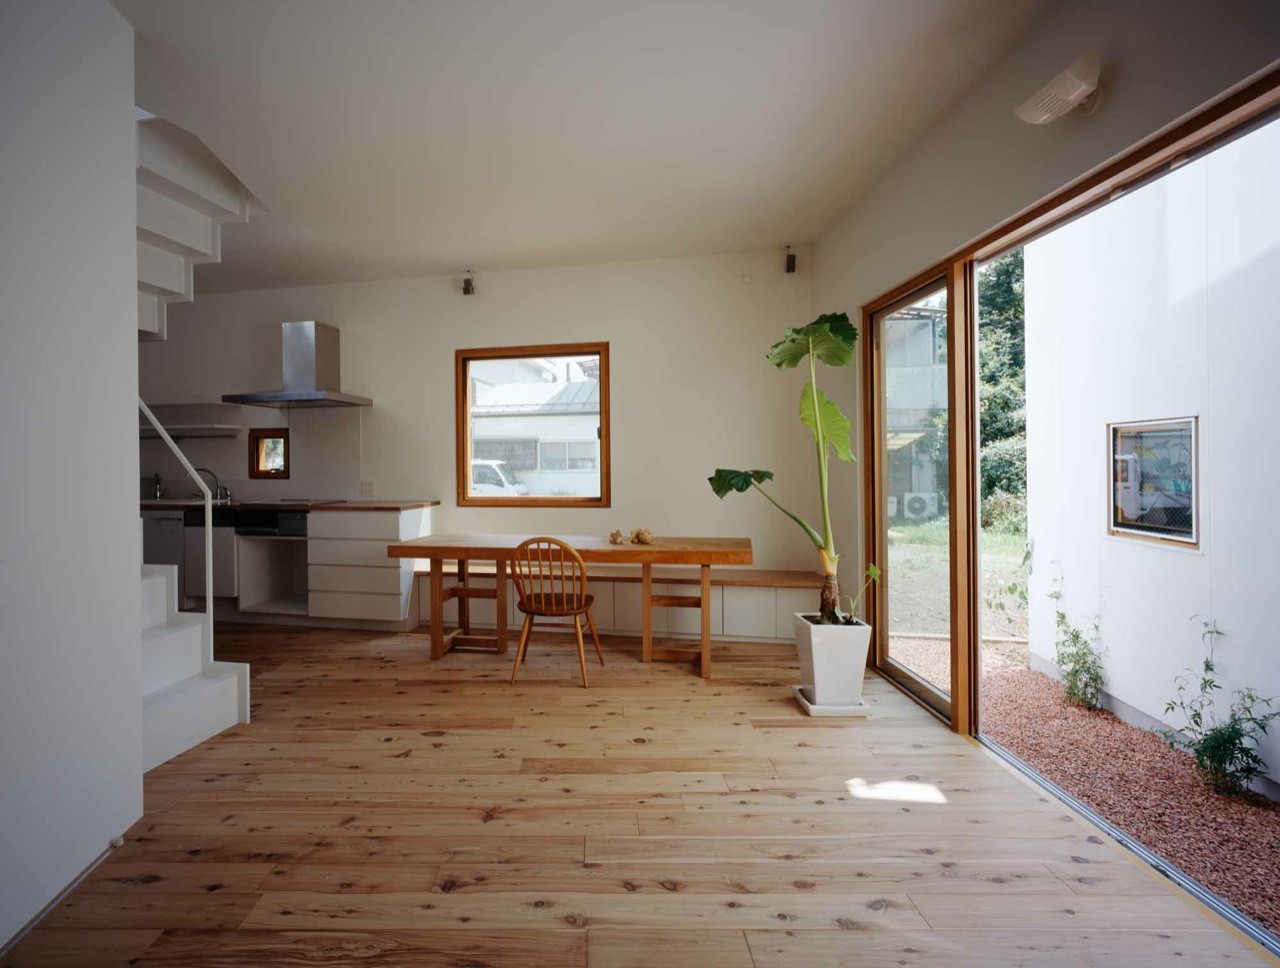 Pics Of Houses Inside Gallery Of Inside House And Outside House Takeshi Hosaka